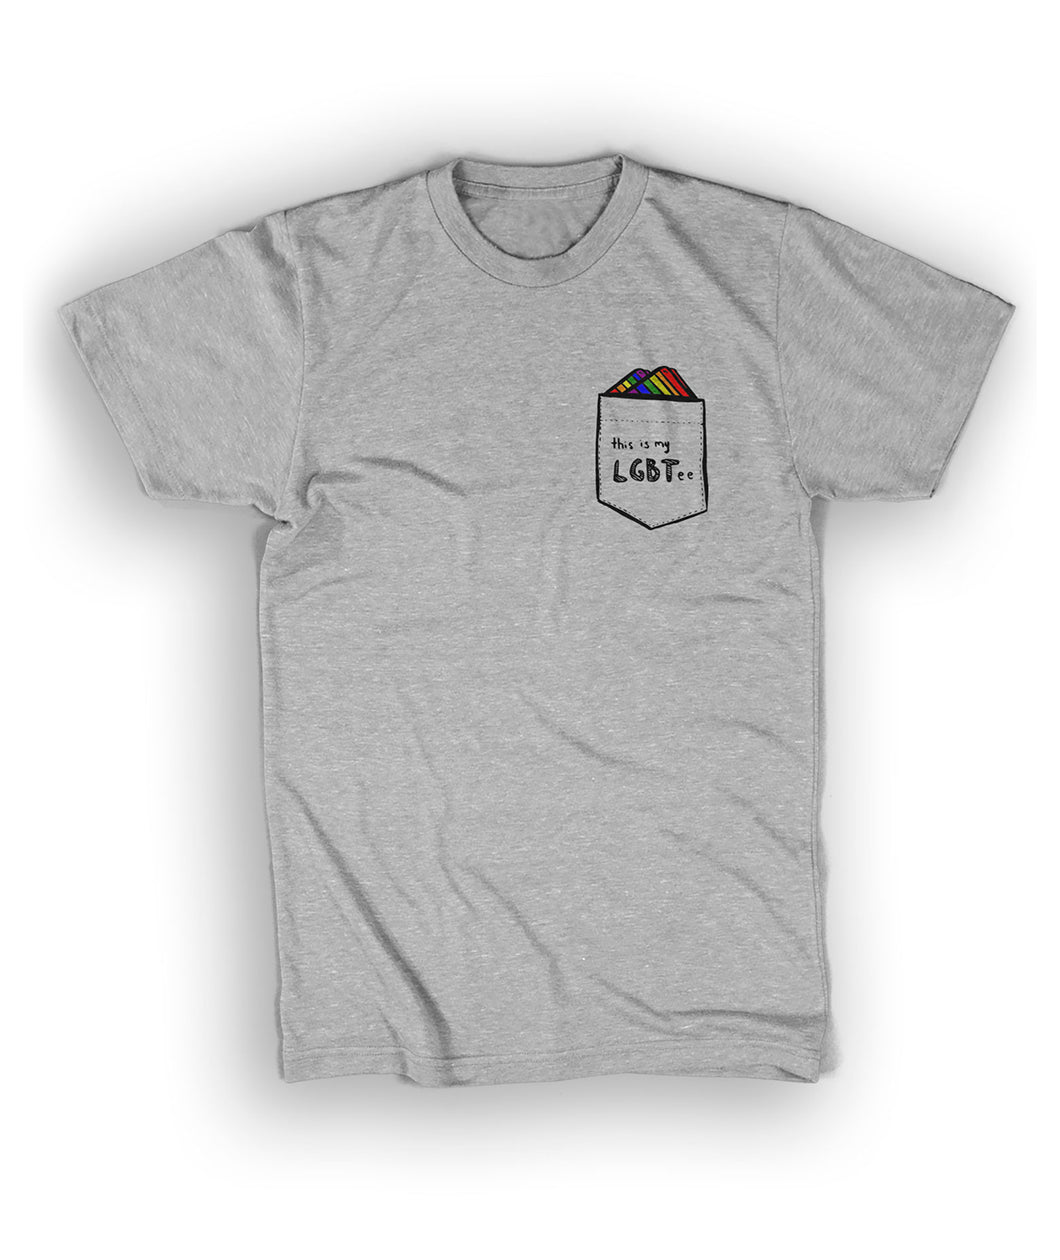 This Is My LGBTee Shirt